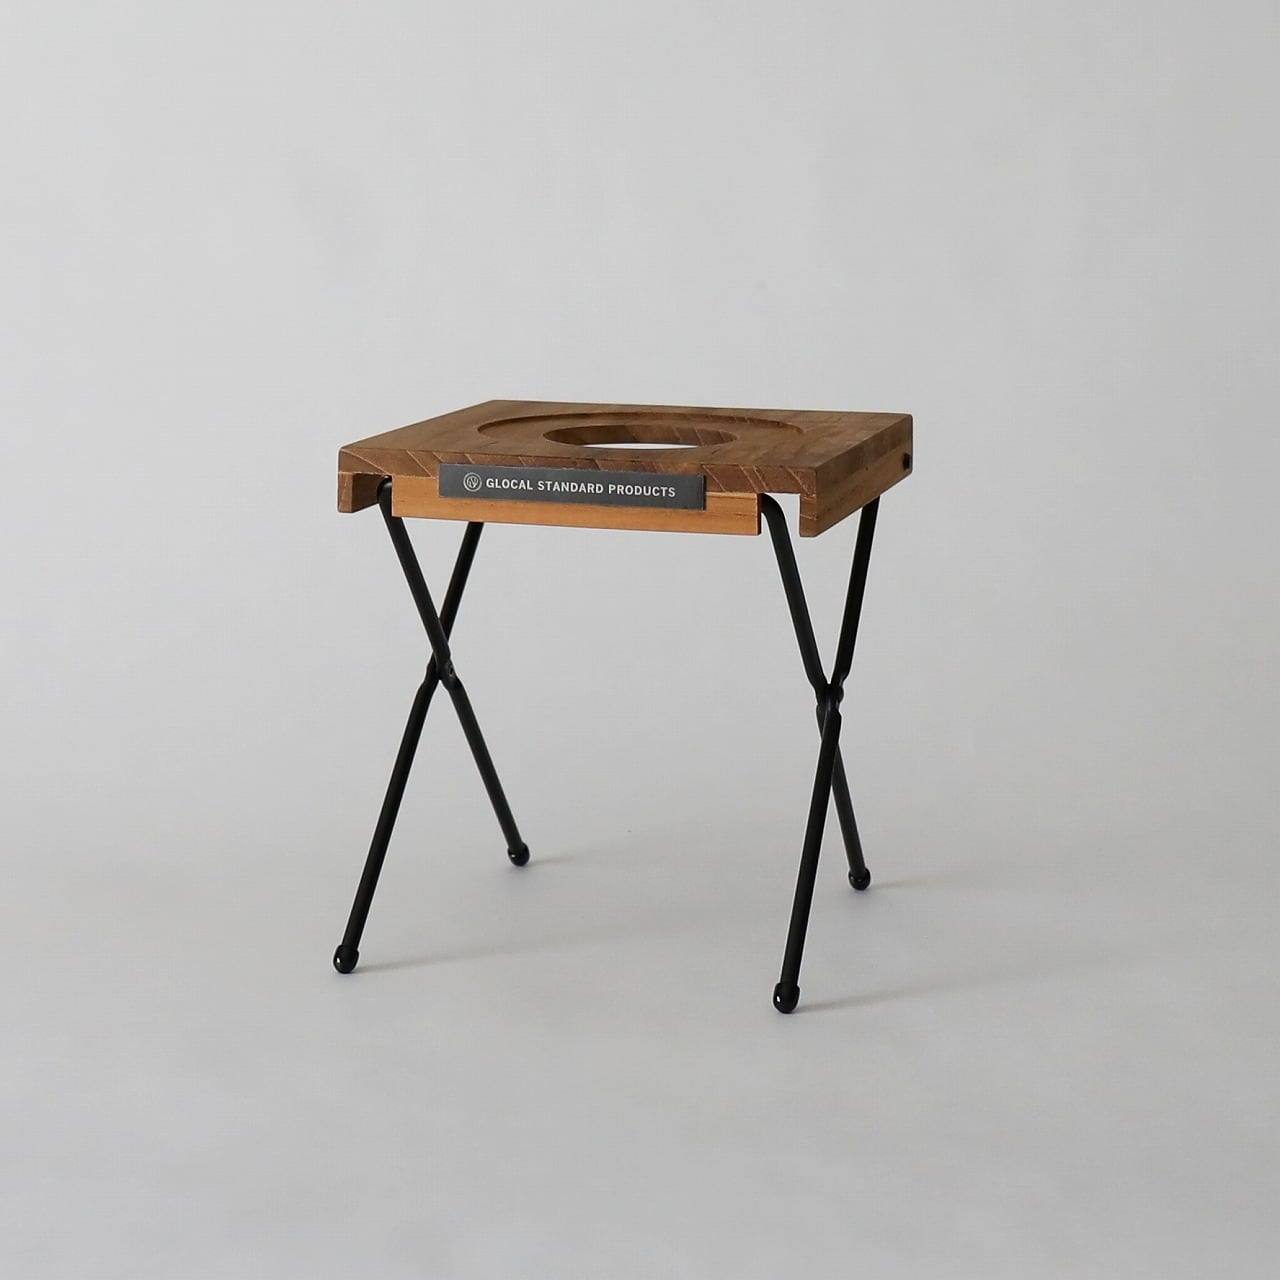 GLOCAL STANDARD PRODUCTS (グローカルスタンダードプロダクツ) Drip stand (ドリップスタンド)